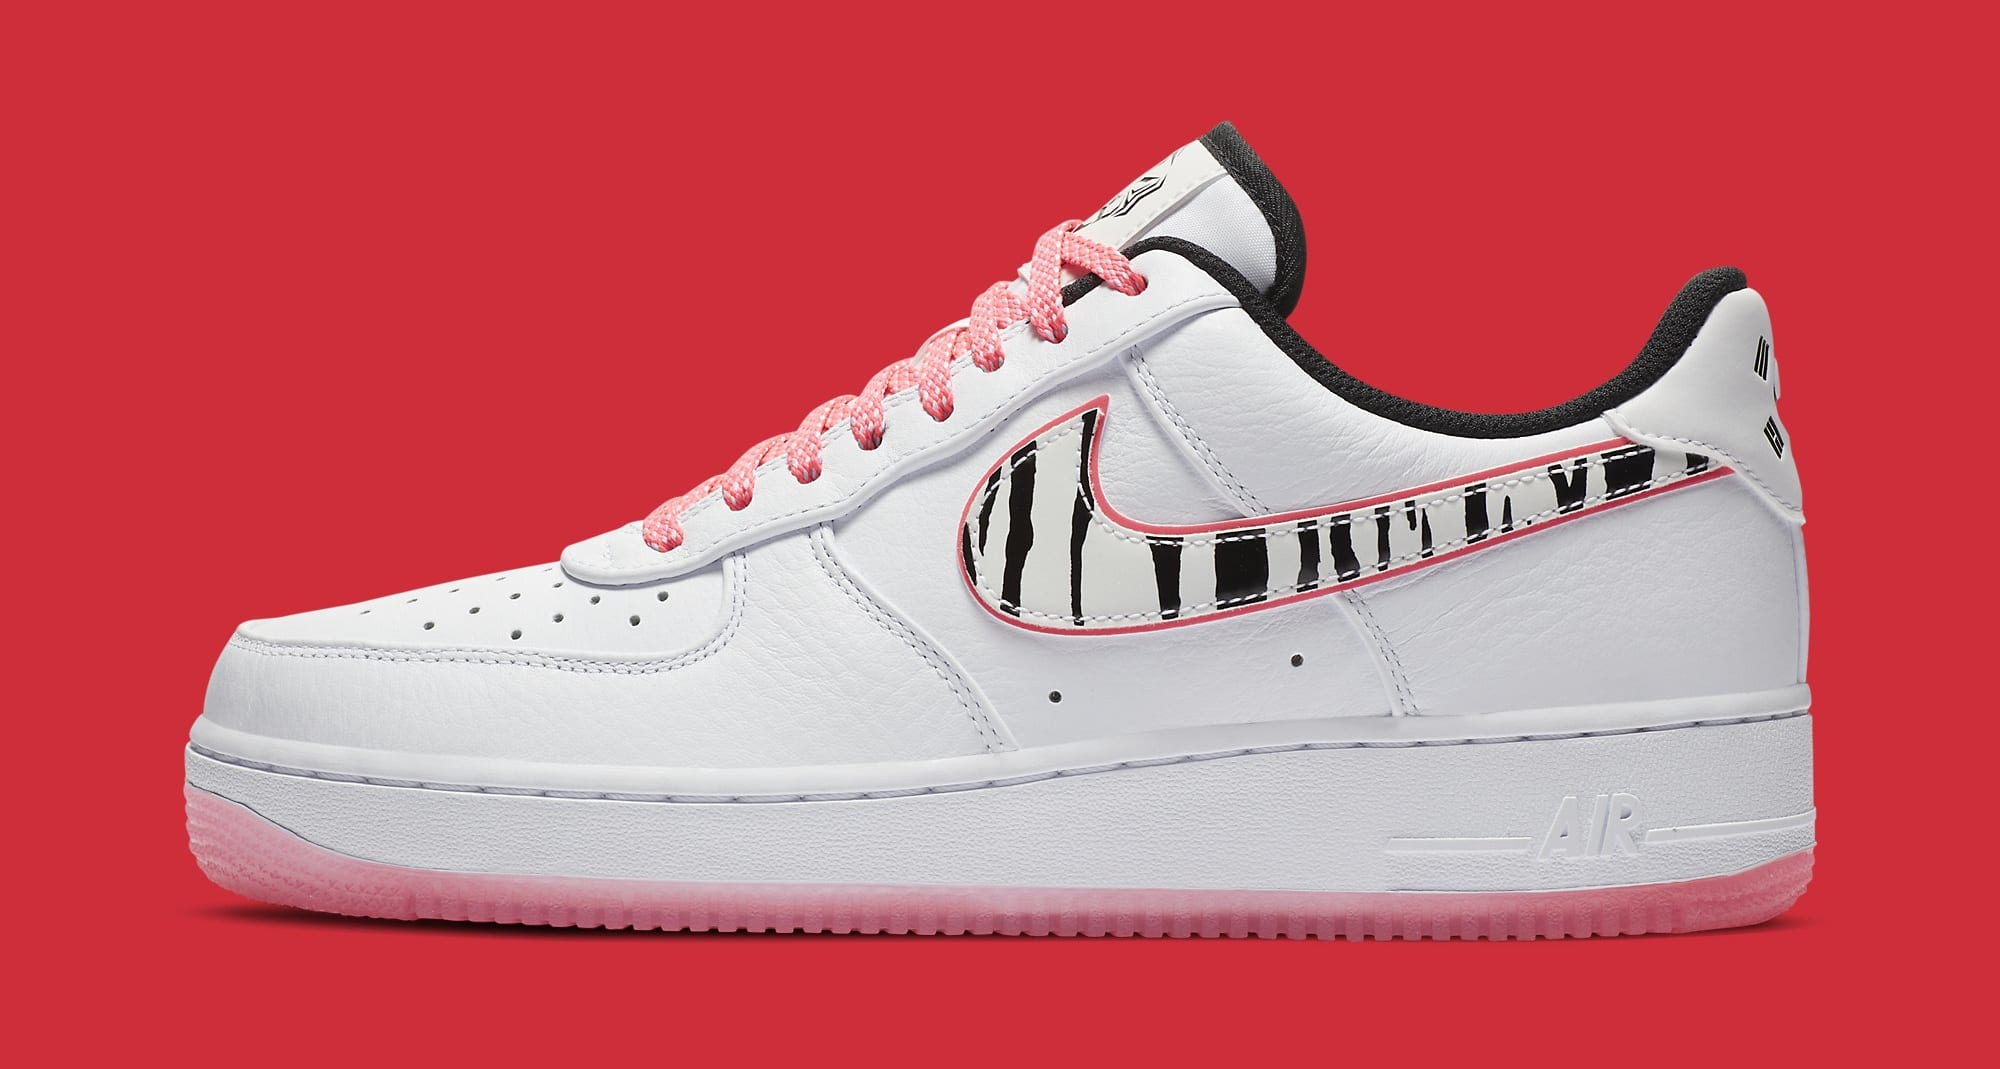 Nike Air Force 1 Low 'South Korea' CW3919-100 Lateral